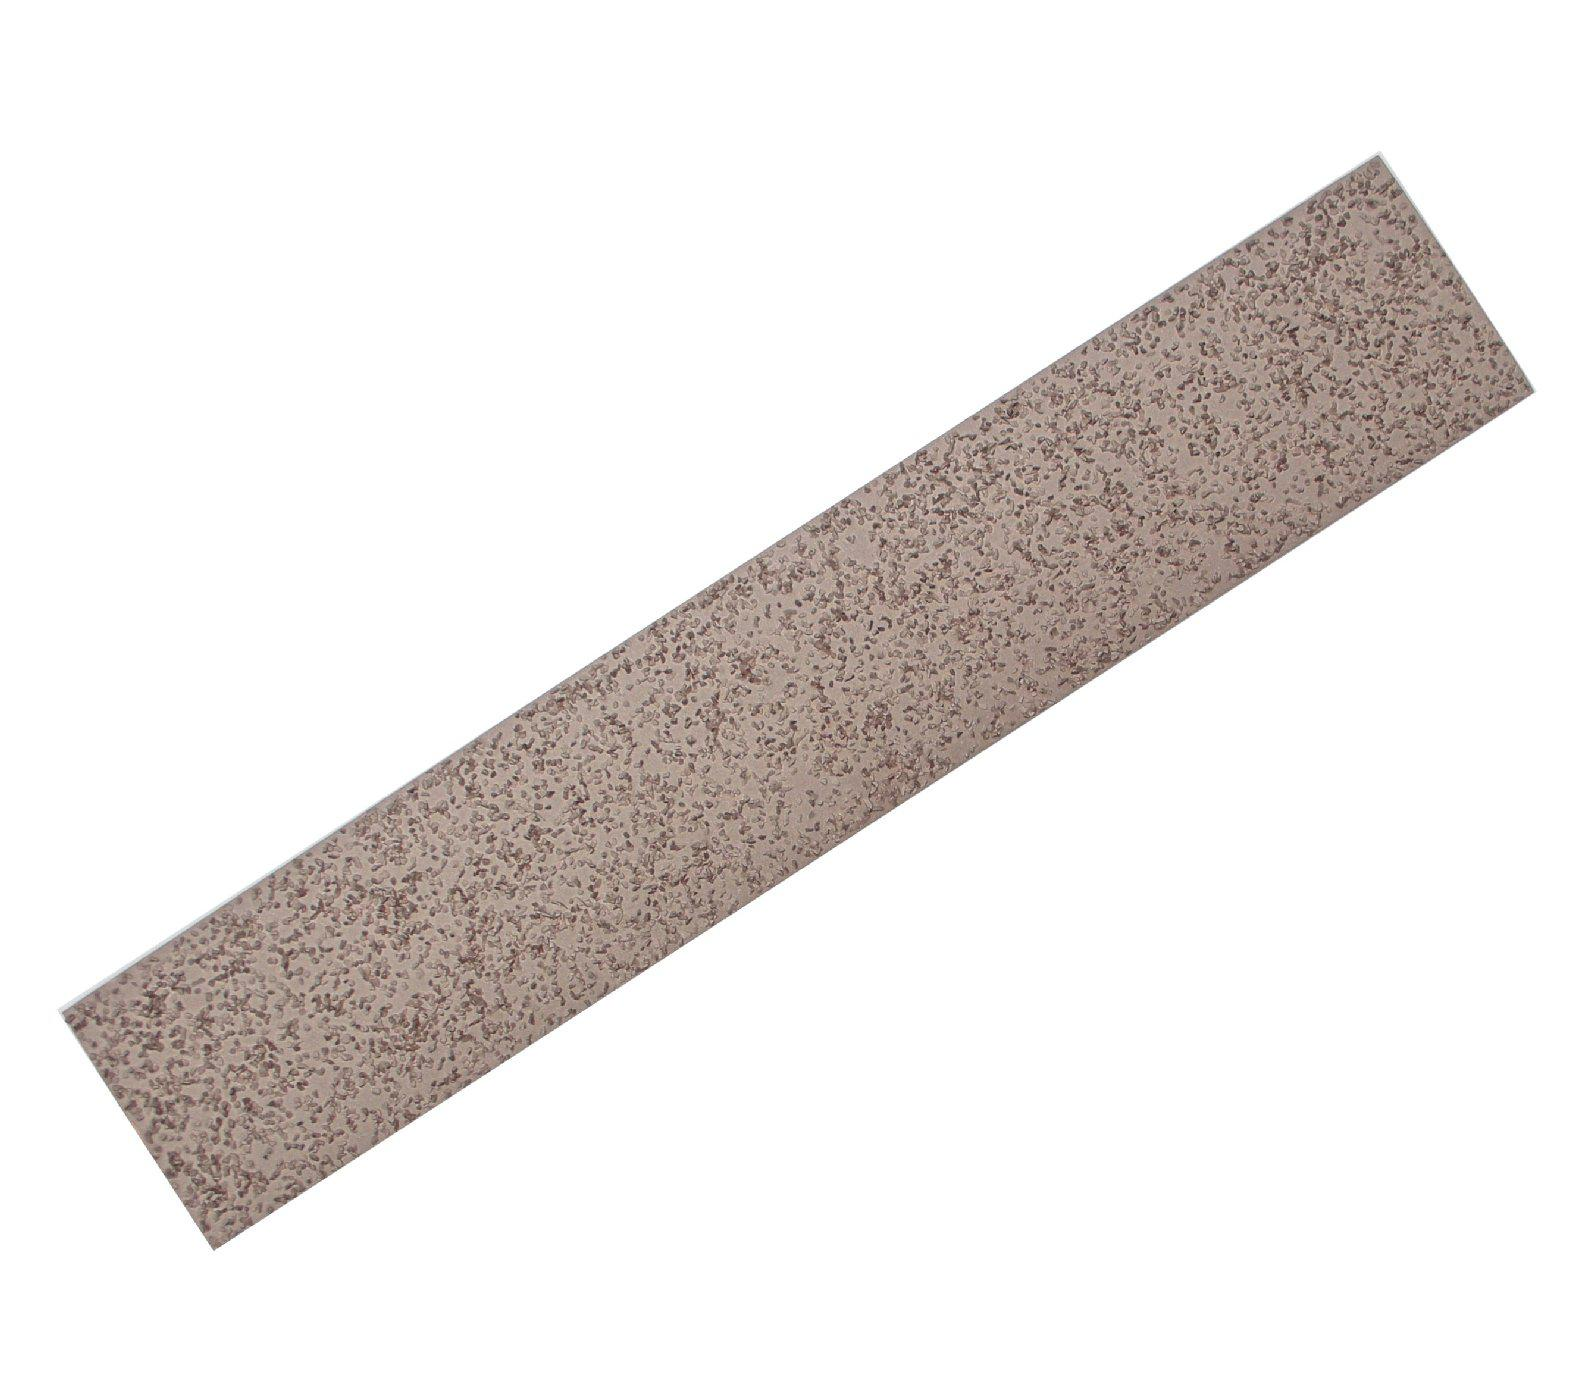 Flexible File 280 x 51mm EXTRA COARSE